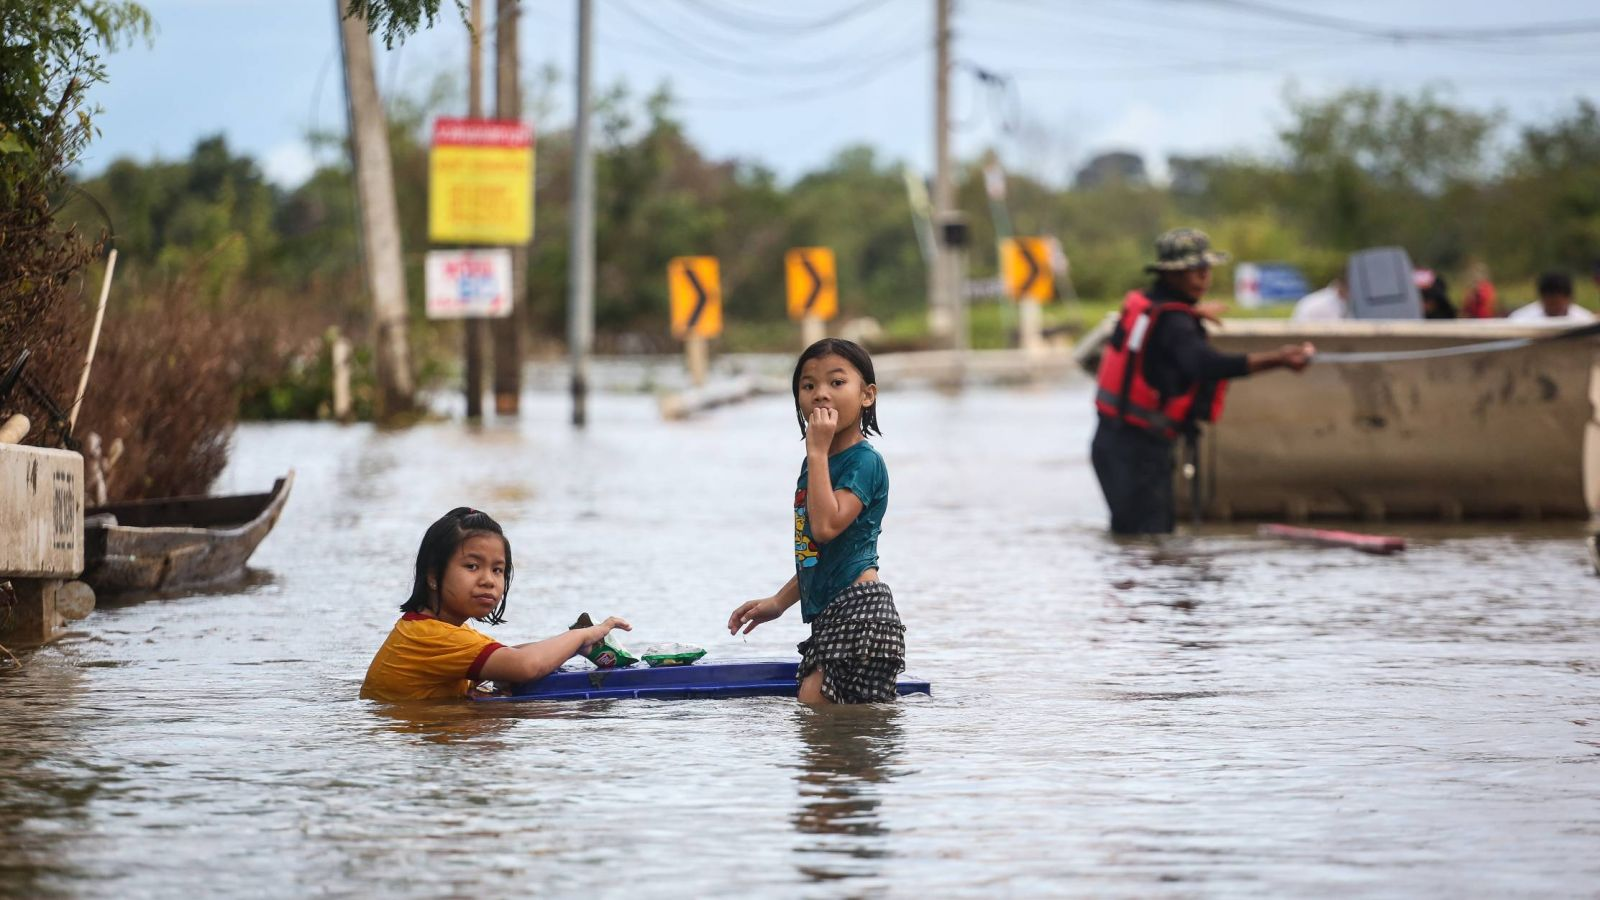 Over 19,000 children are affected by the flood in Ubon Ratchathani